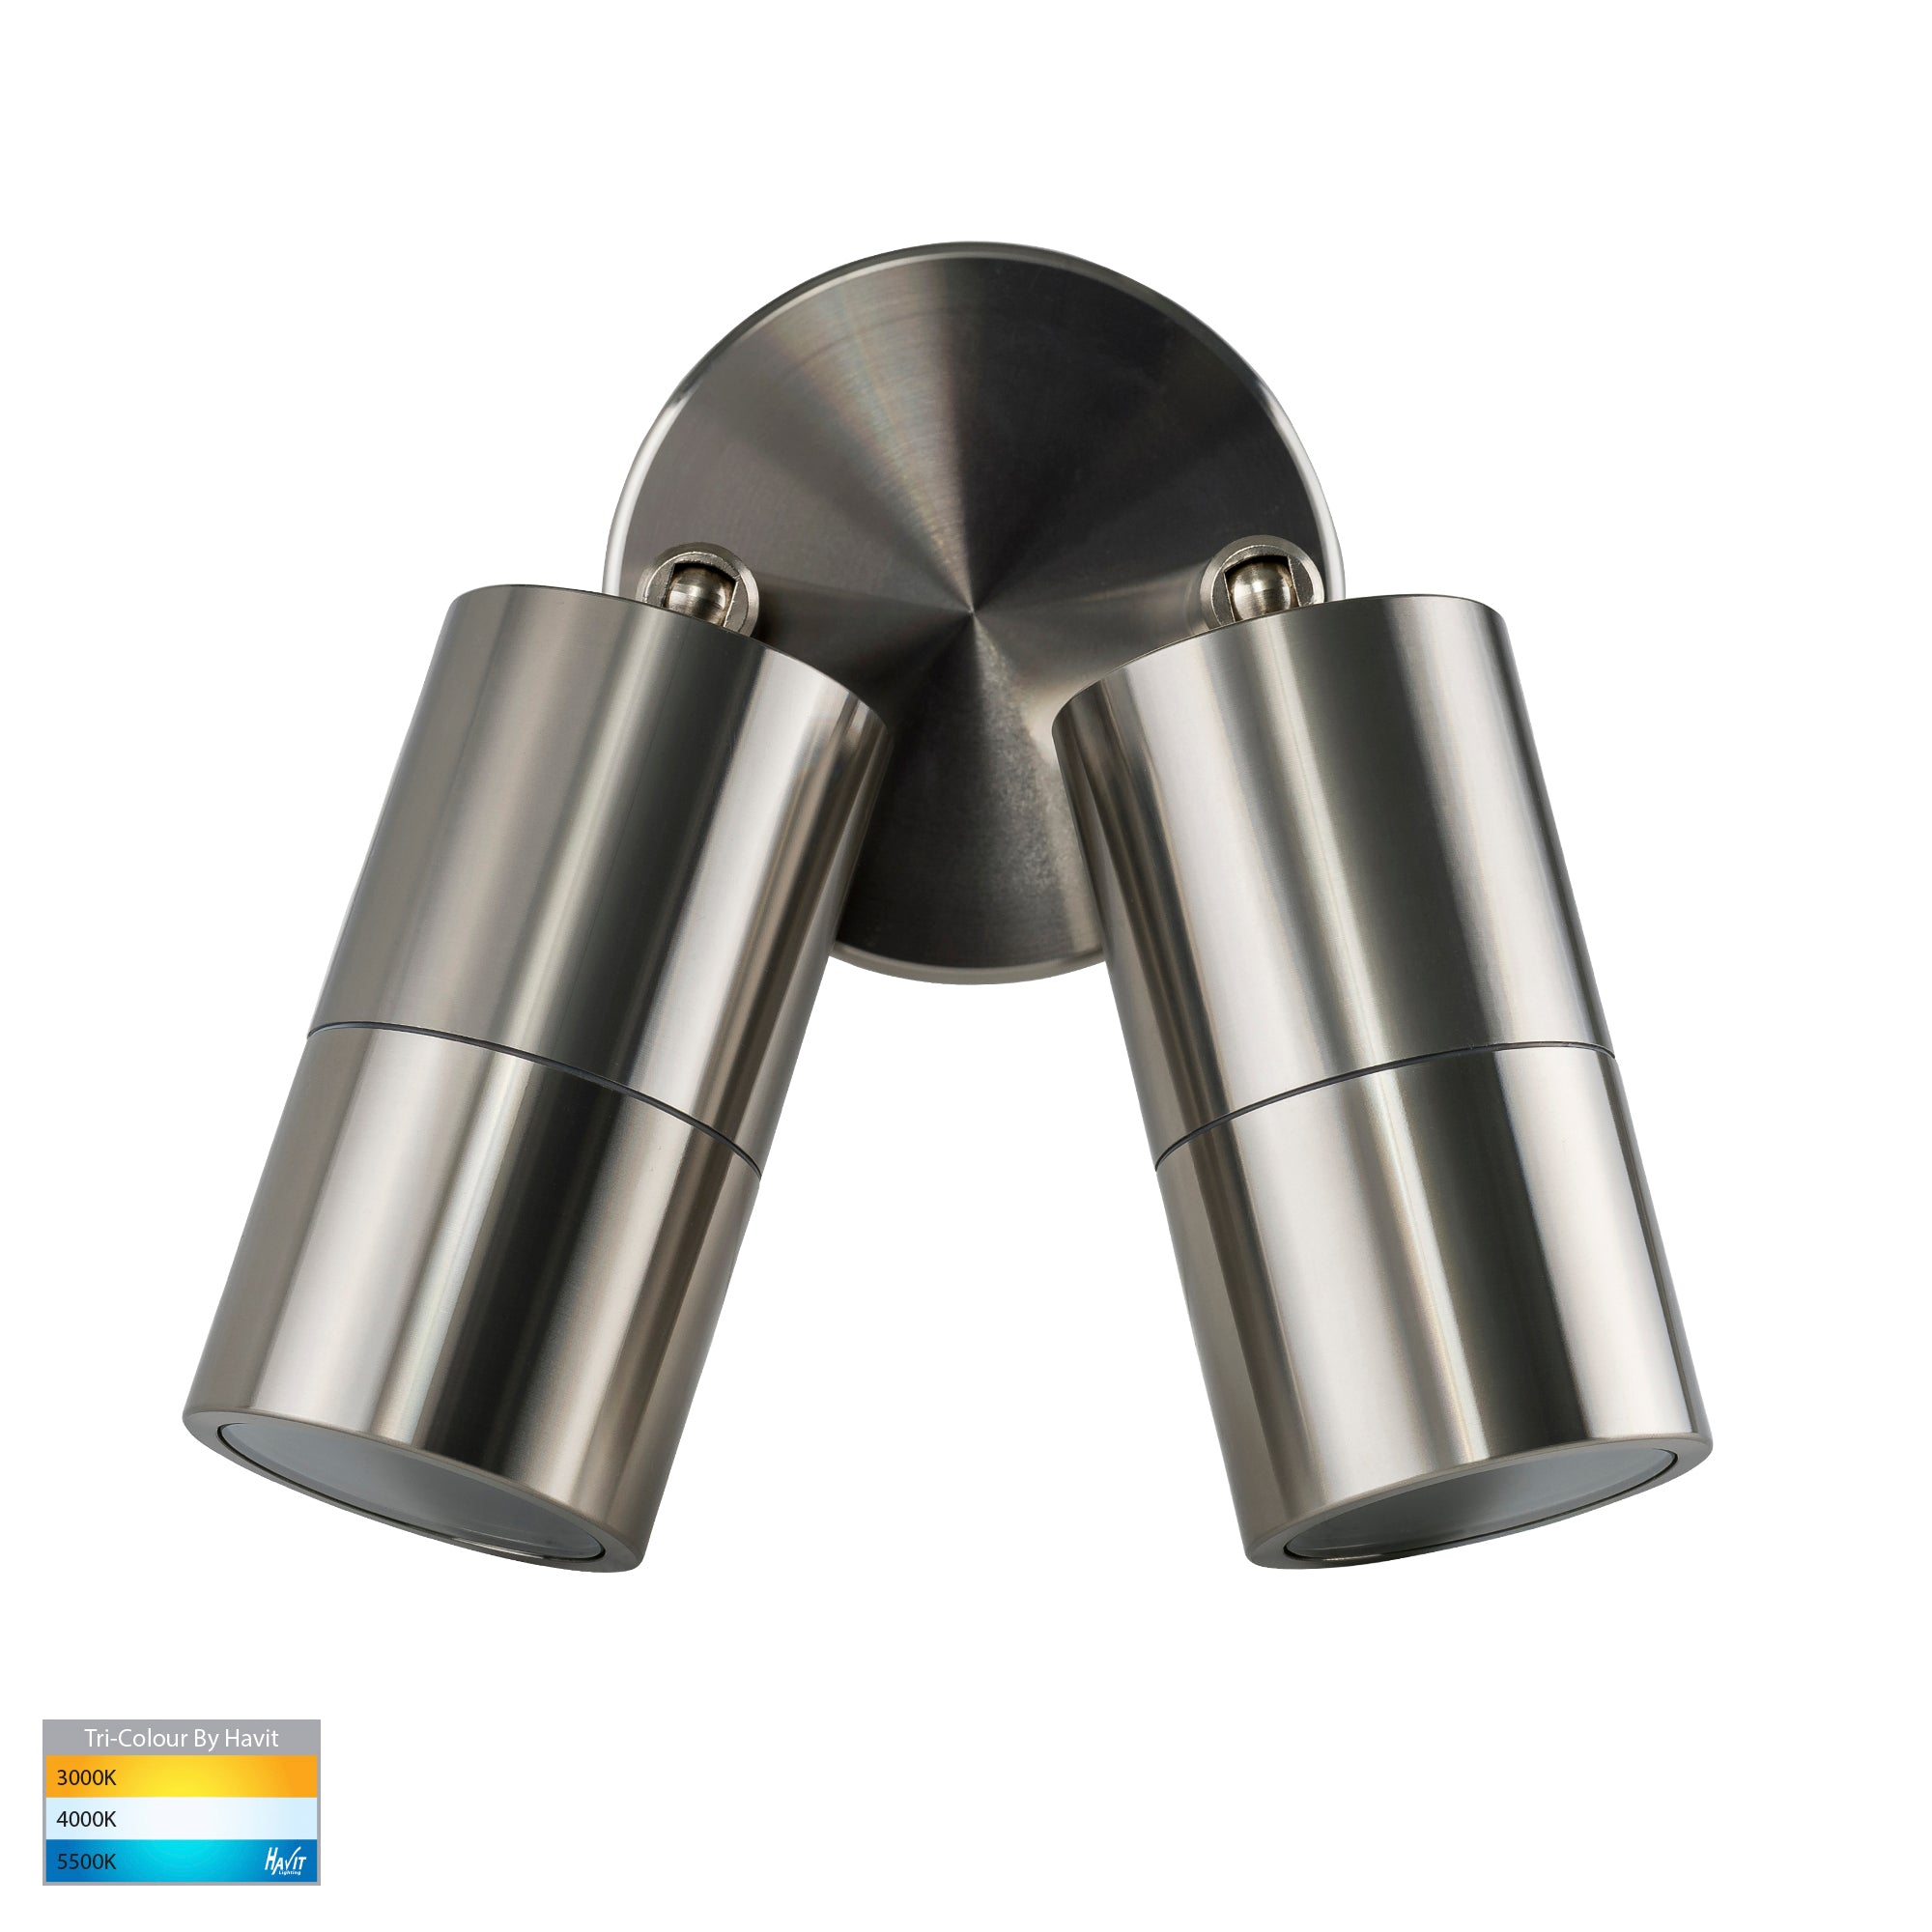 HV1385T-HV1387T - Tivah Titanium Aluminium TRI Colour Double Adjustable Wall Pillar Lights